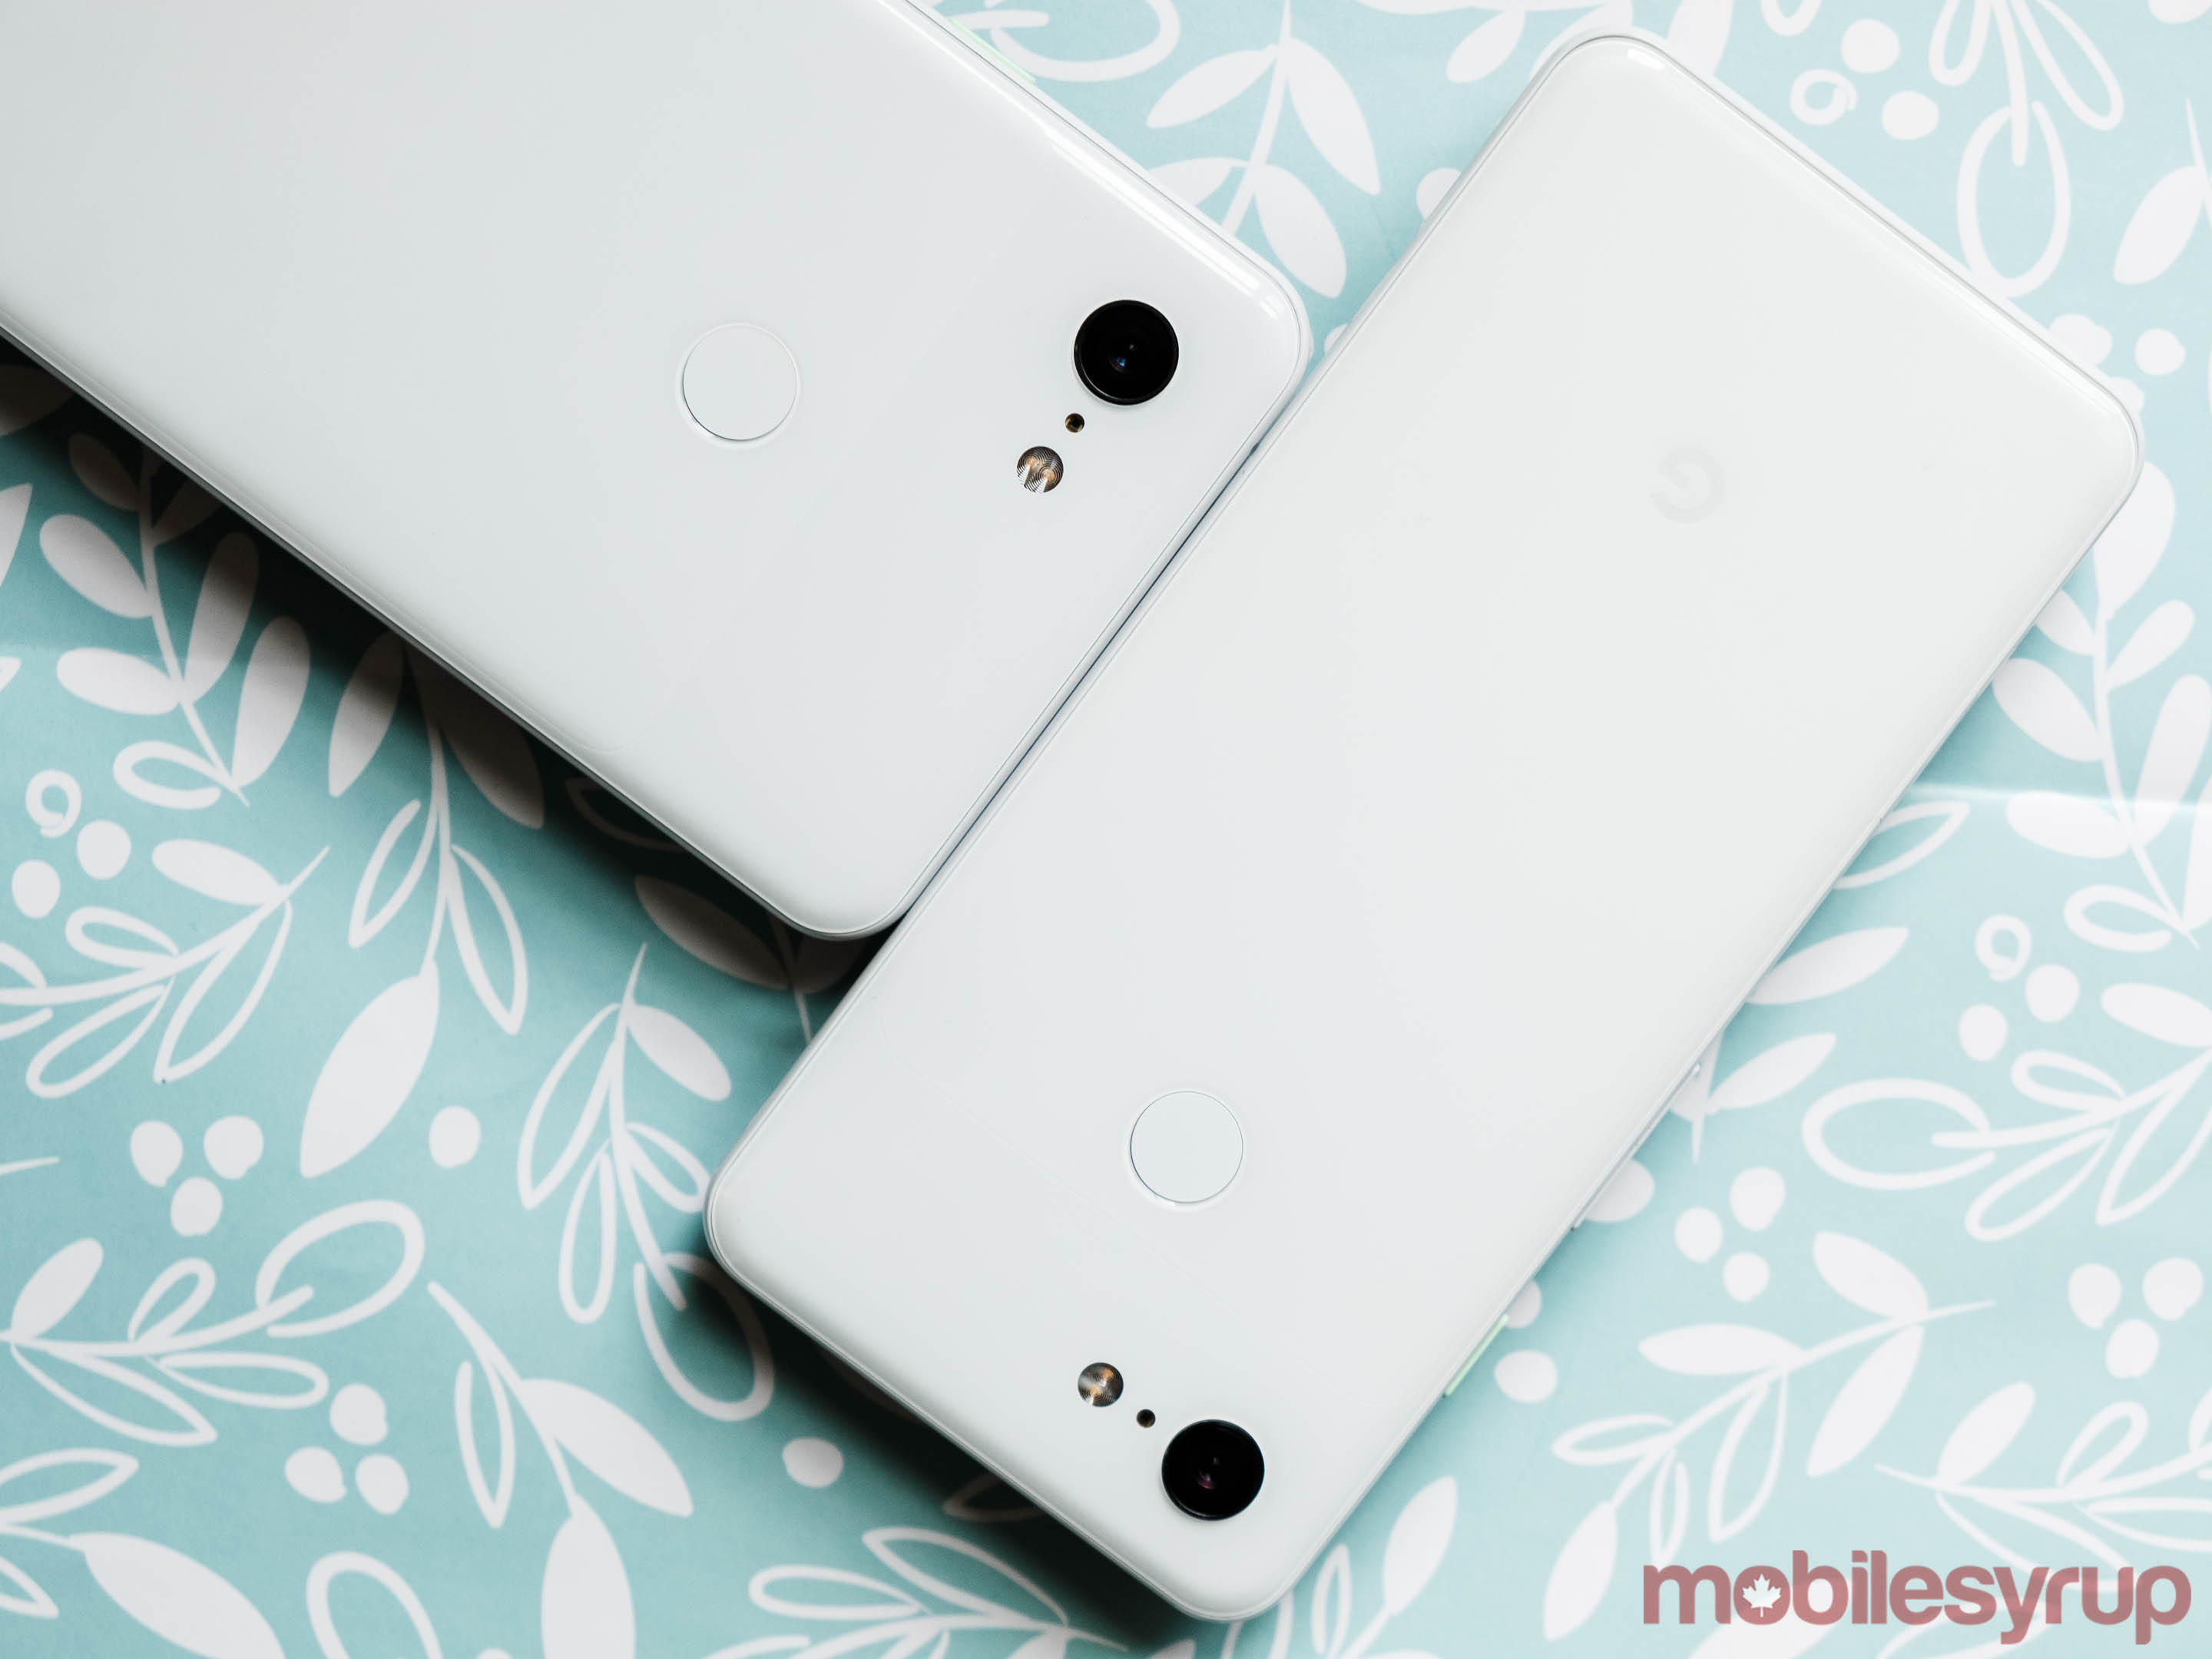 Pixel 3 and Pixel 3 XL side-by-side